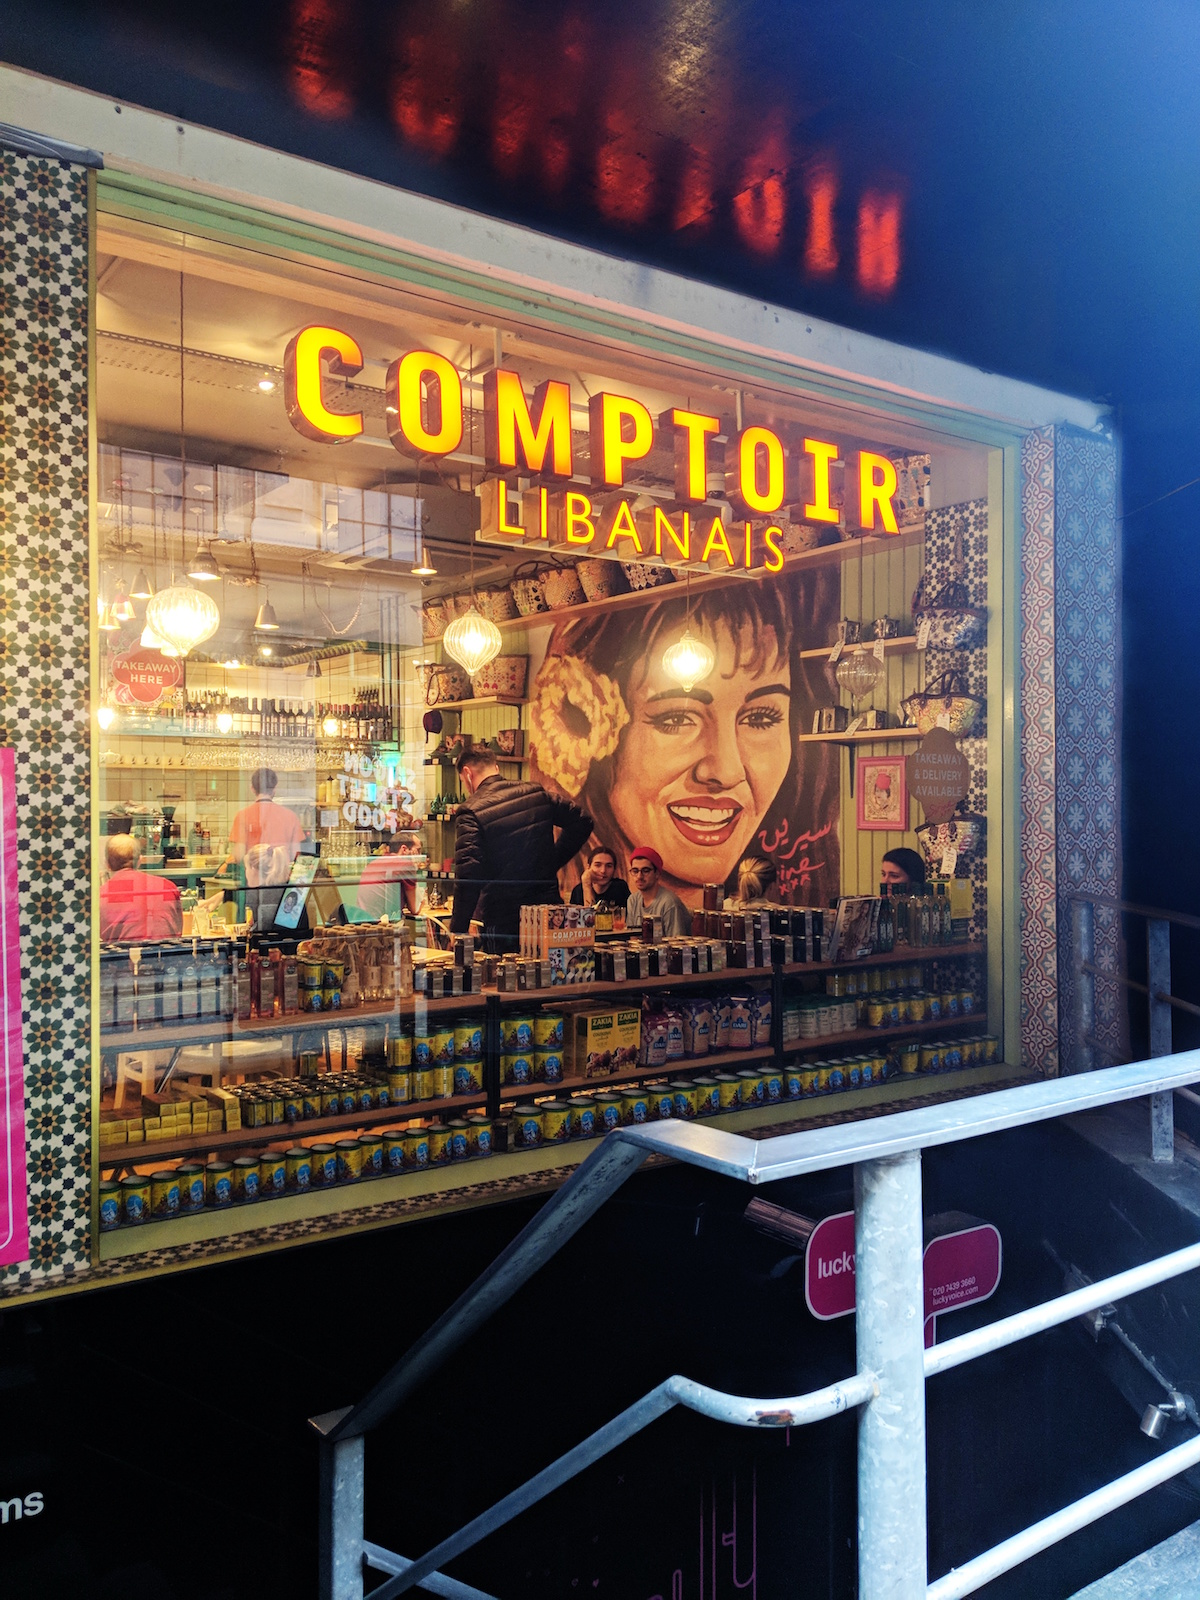 The exterior of the Comptoir Libanais at their Soho branch